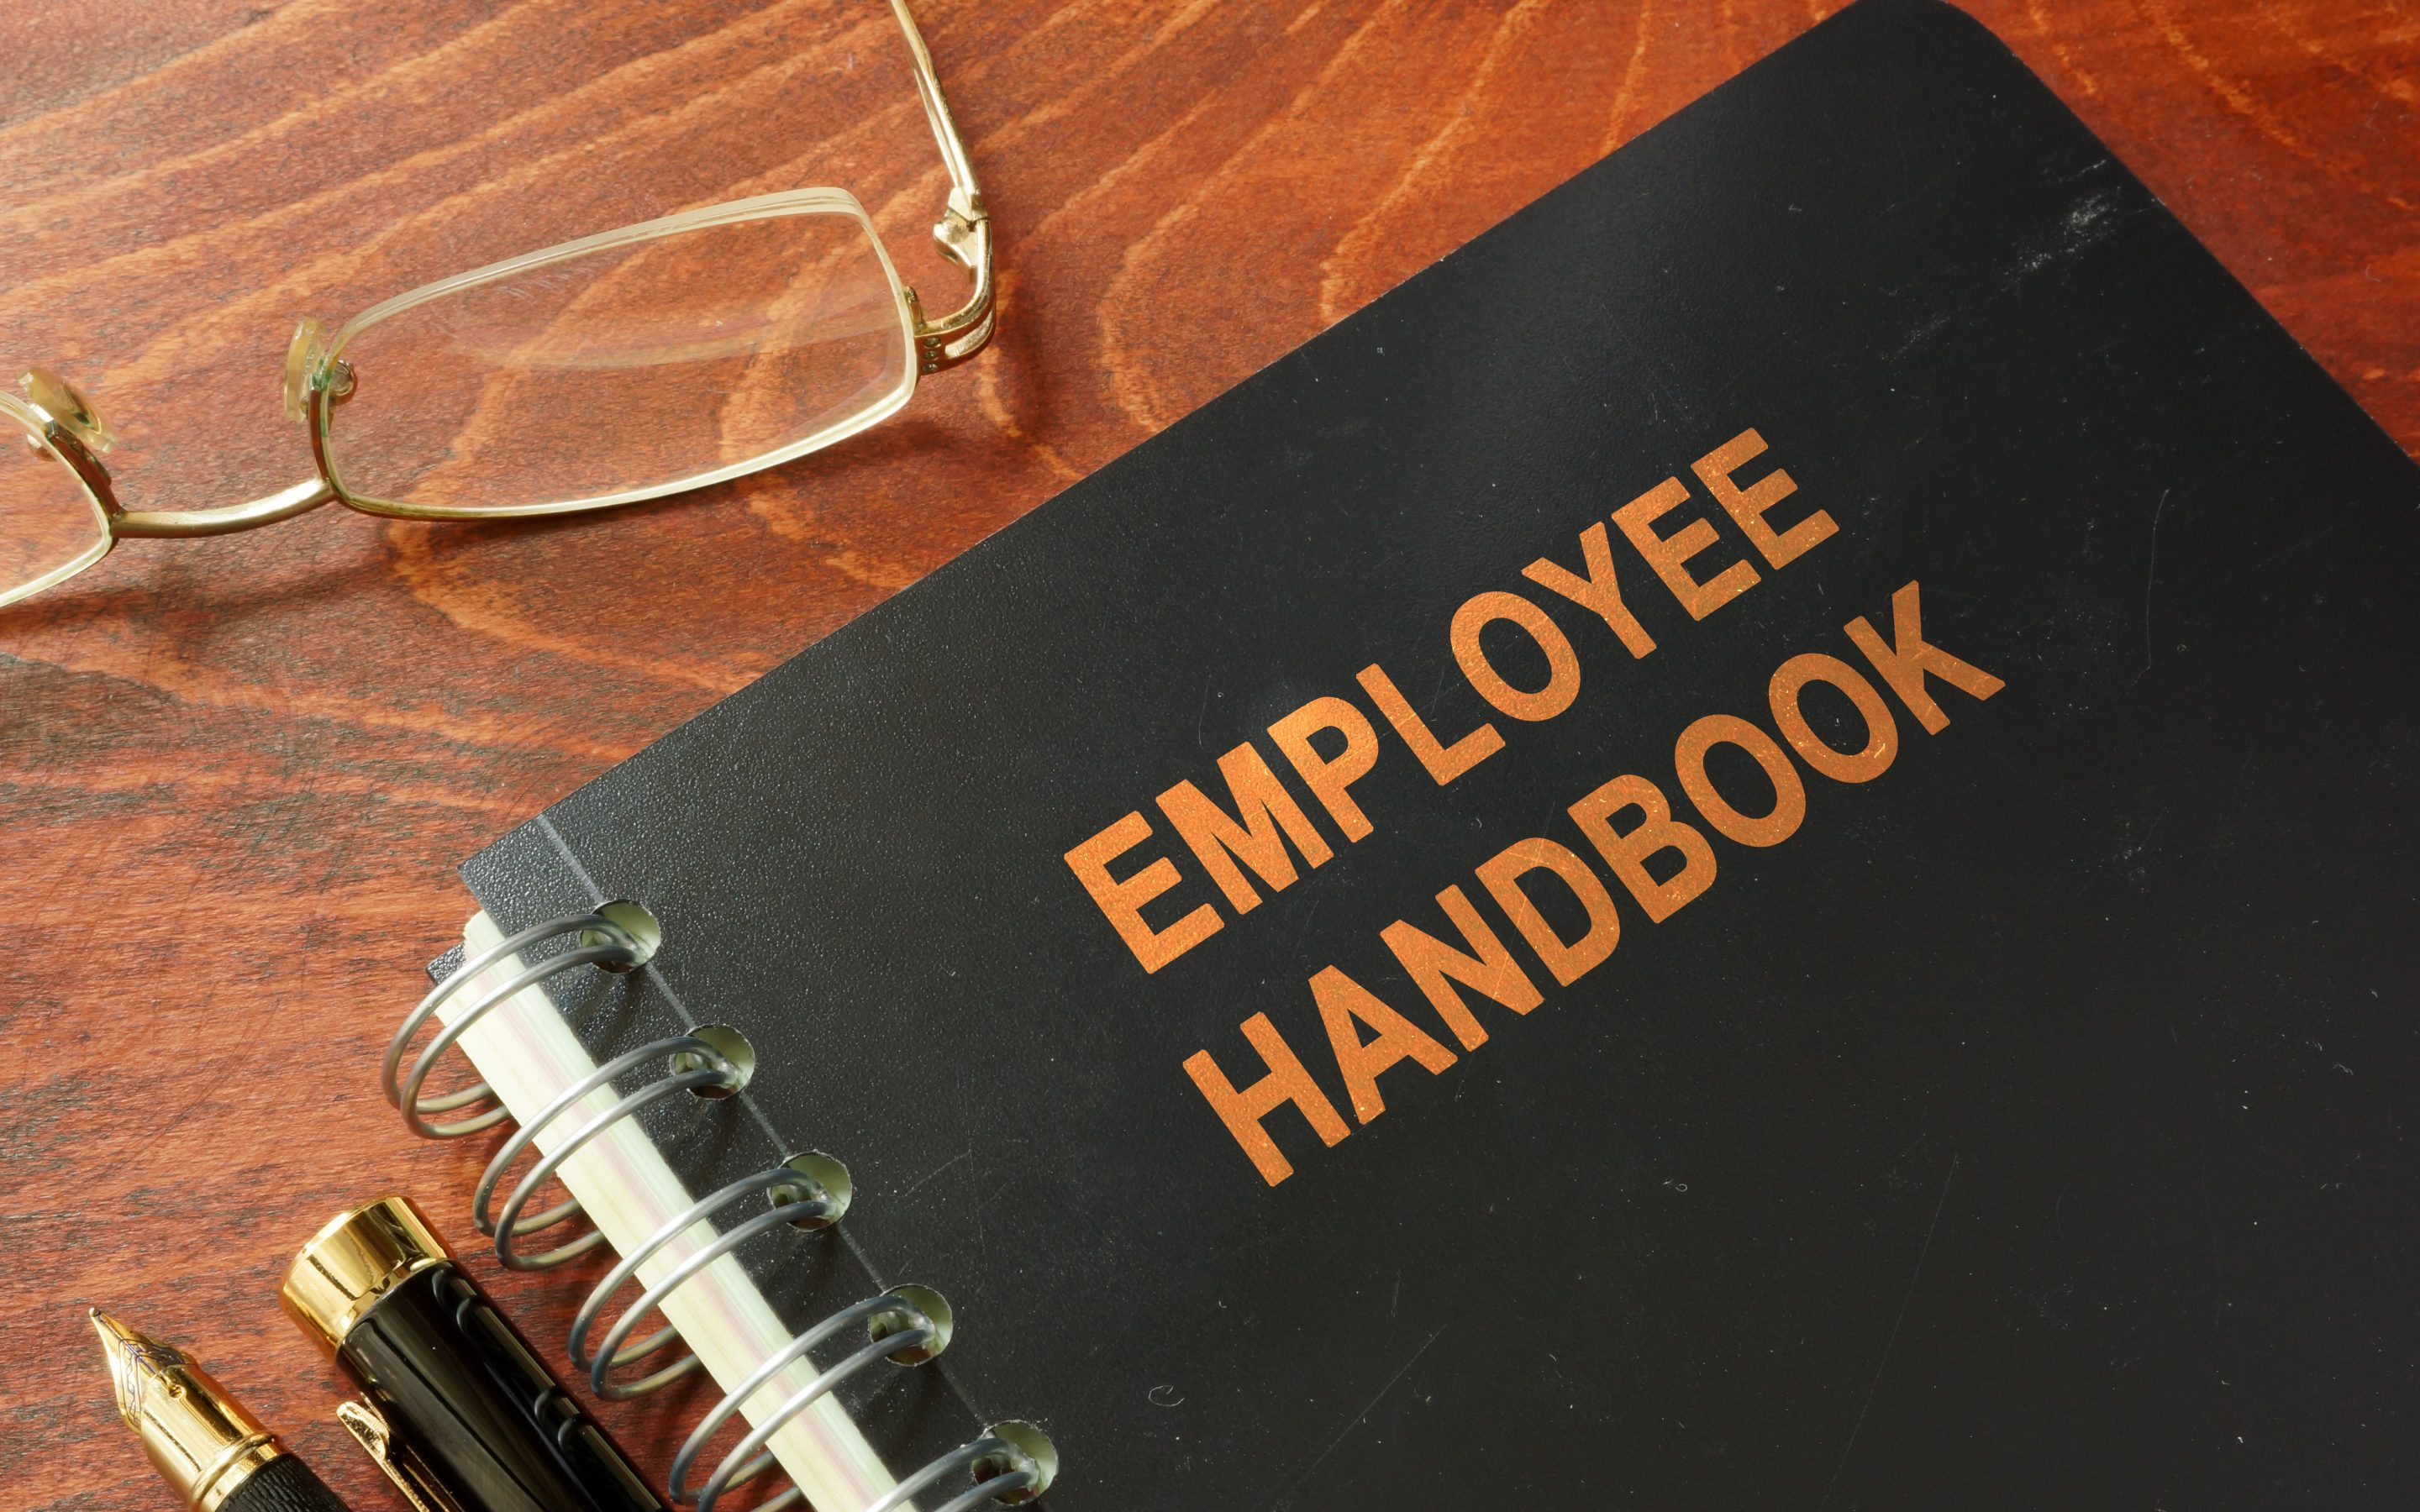 April: Annual reviews of employee handbooks are essential